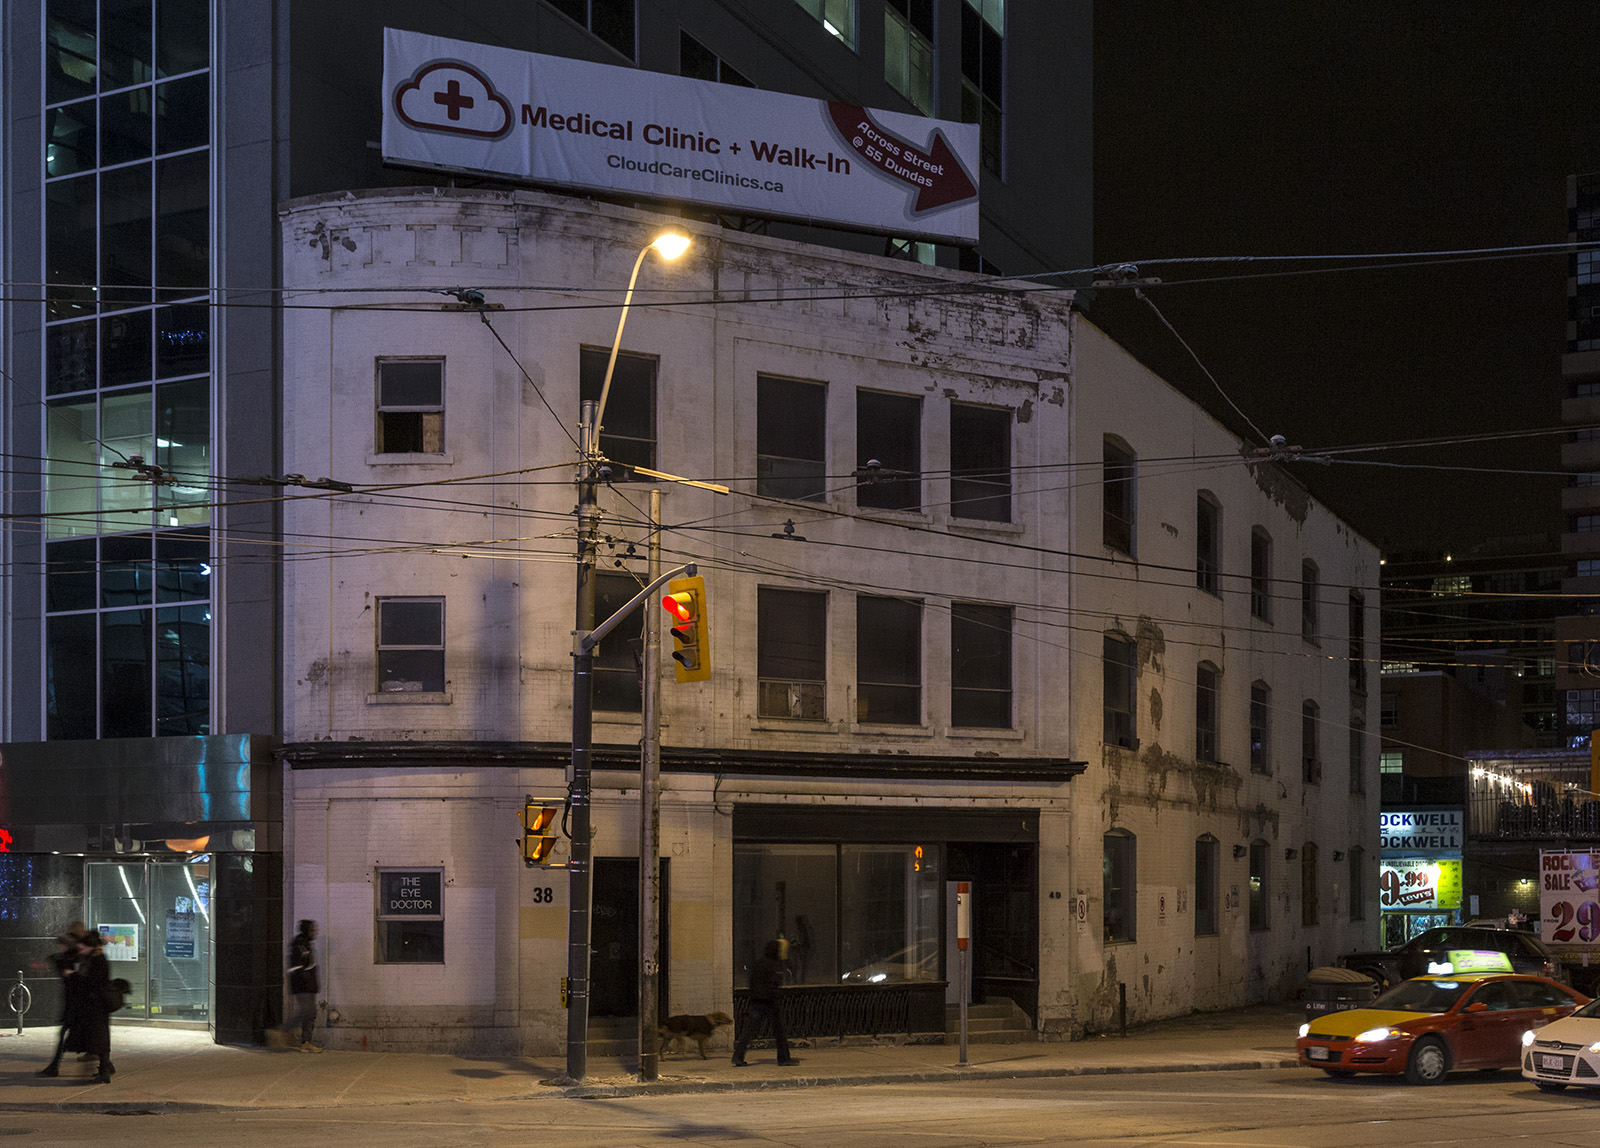 20140130. Expropriated. Gutted. But no development application. 38-40 Dundas St E, Toronto, once an Hakim Optical.